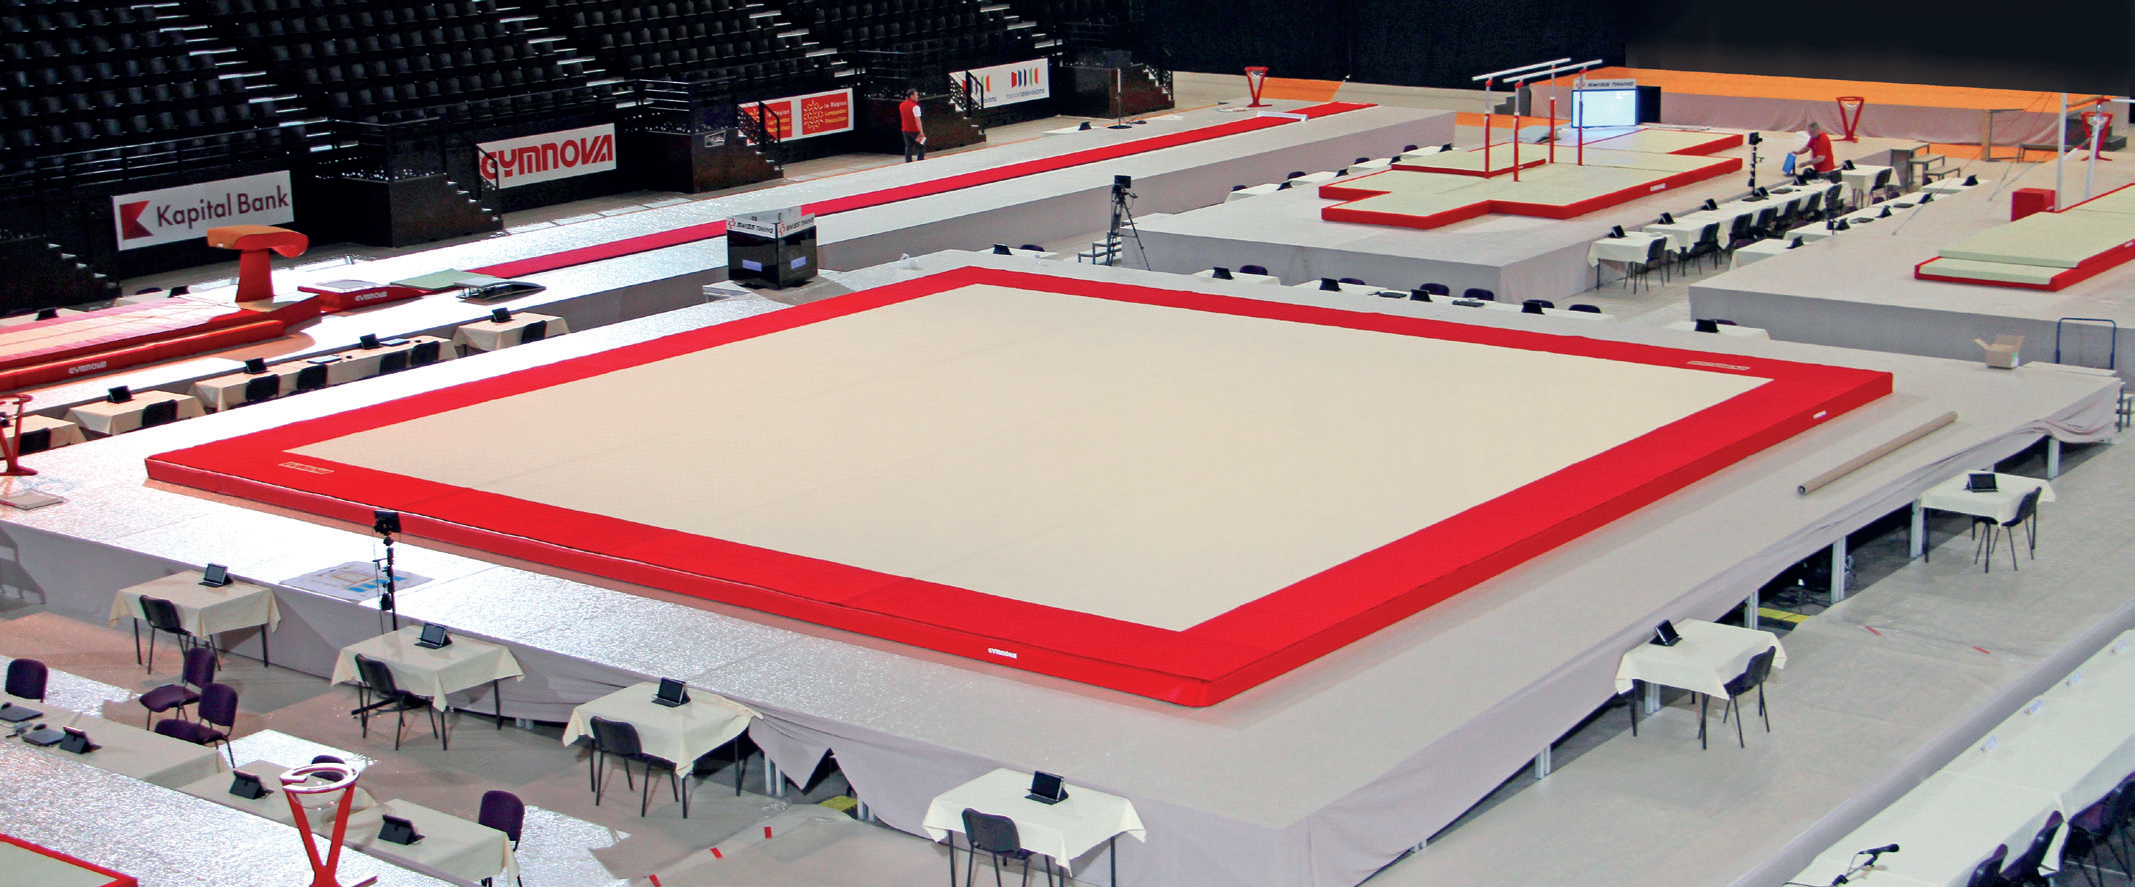 Competition artistic gymnastics exercise floors gym rg for Floor gymnastics